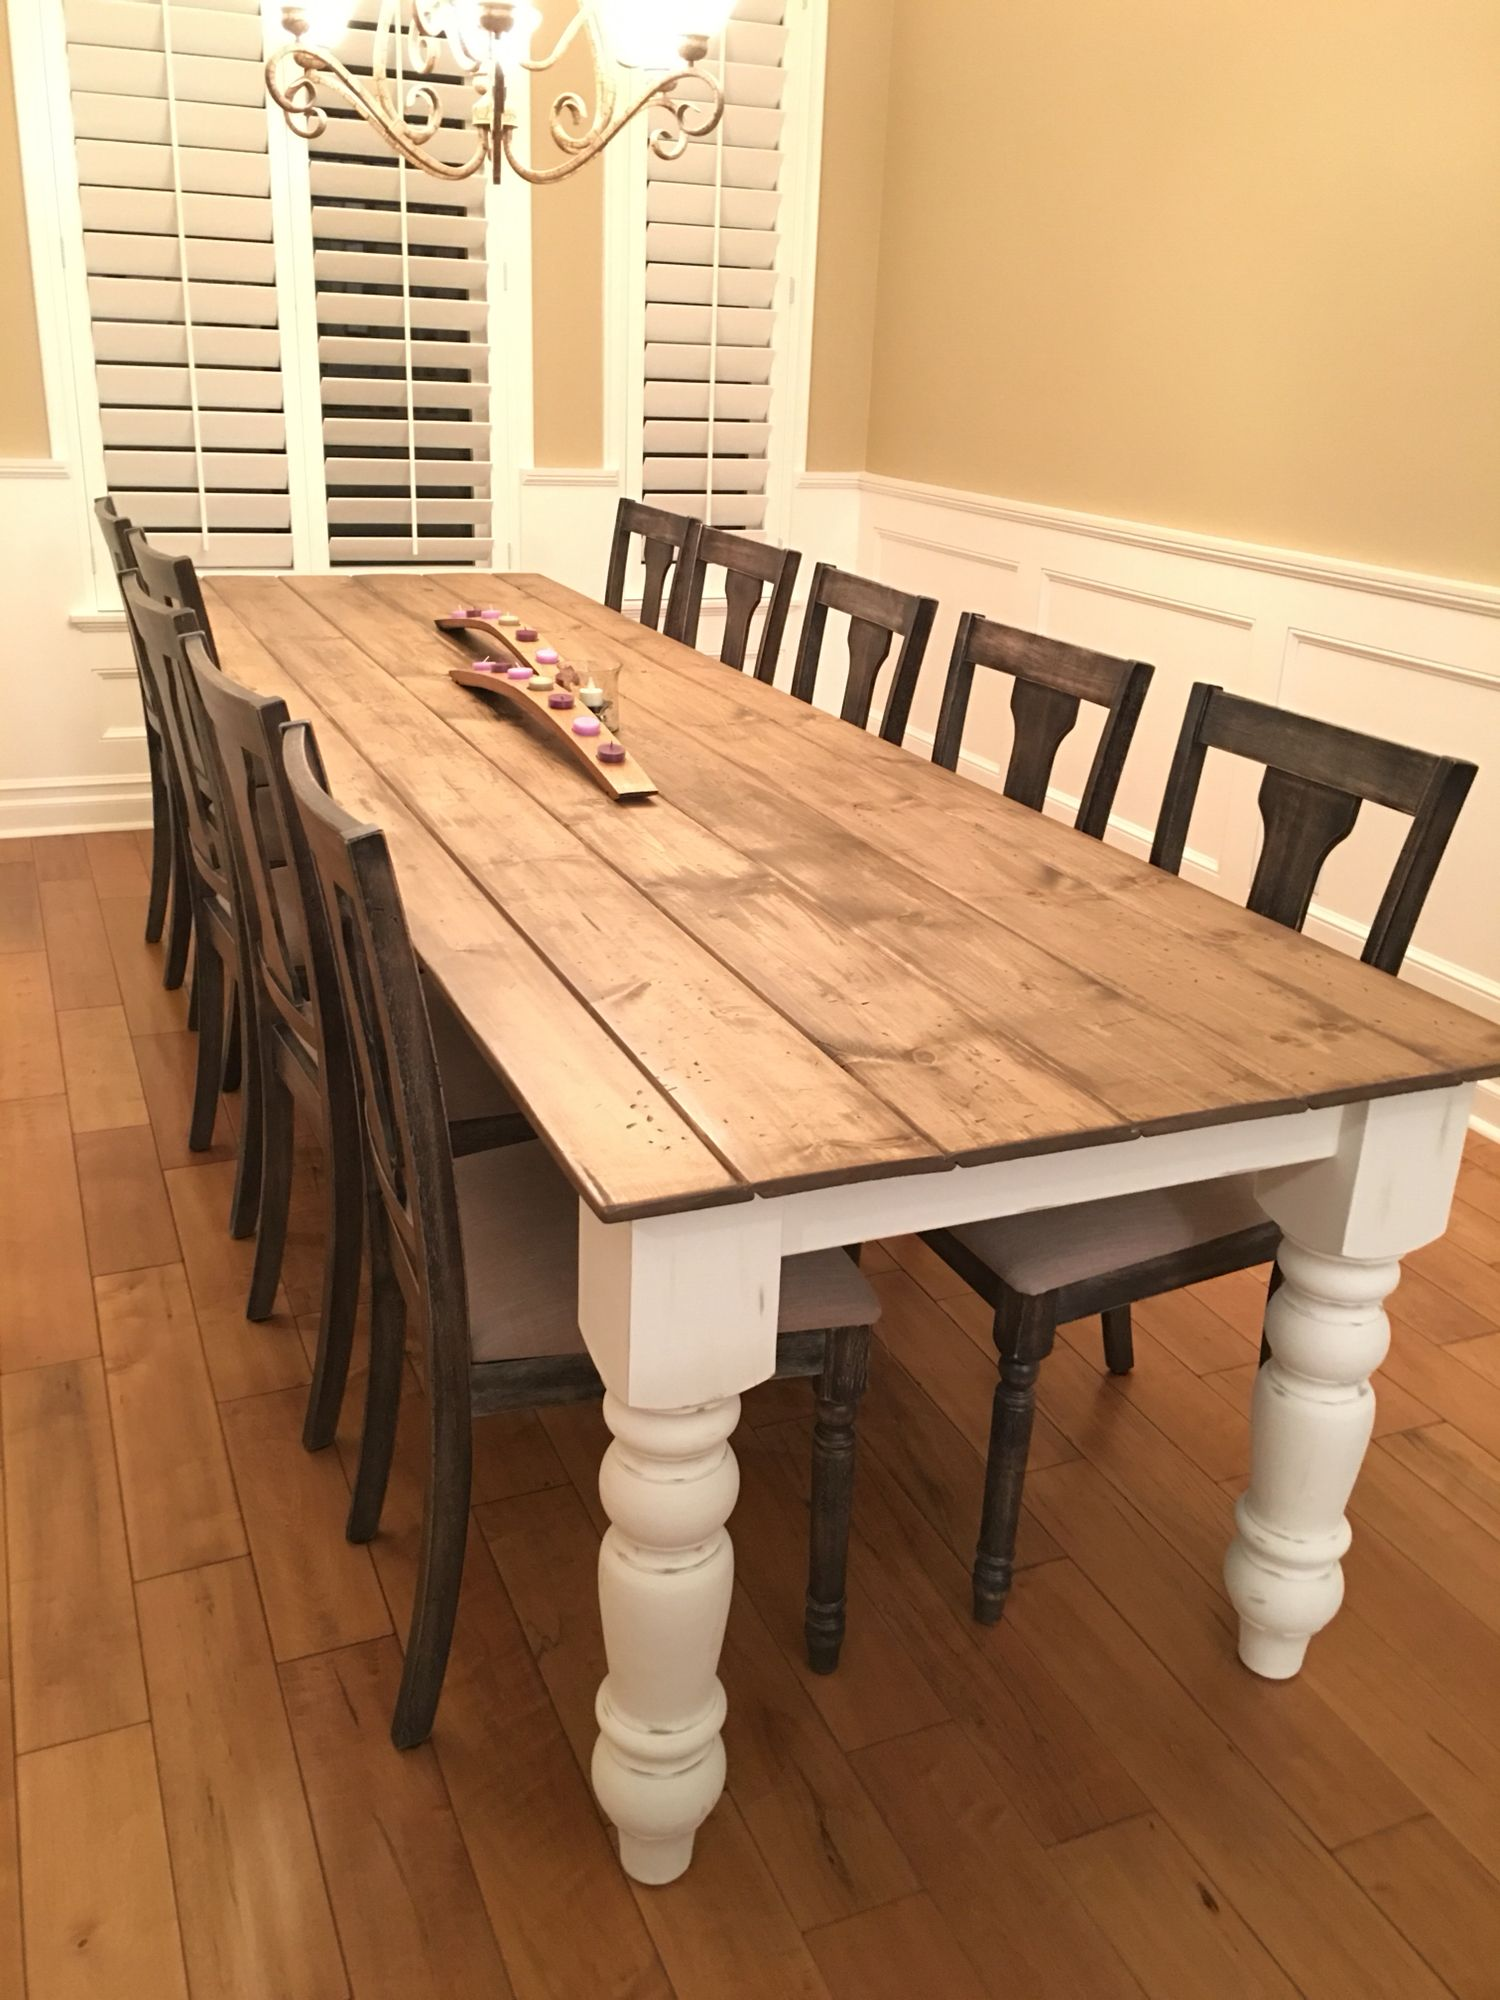 DIY FARMHOUSE TABLE. My husband made my 10 foot 8 inch farmhouse table. Top - DIY FARMHOUSE TABLE. My Husband Made My 10 Foot 8 Inch Farmhouse